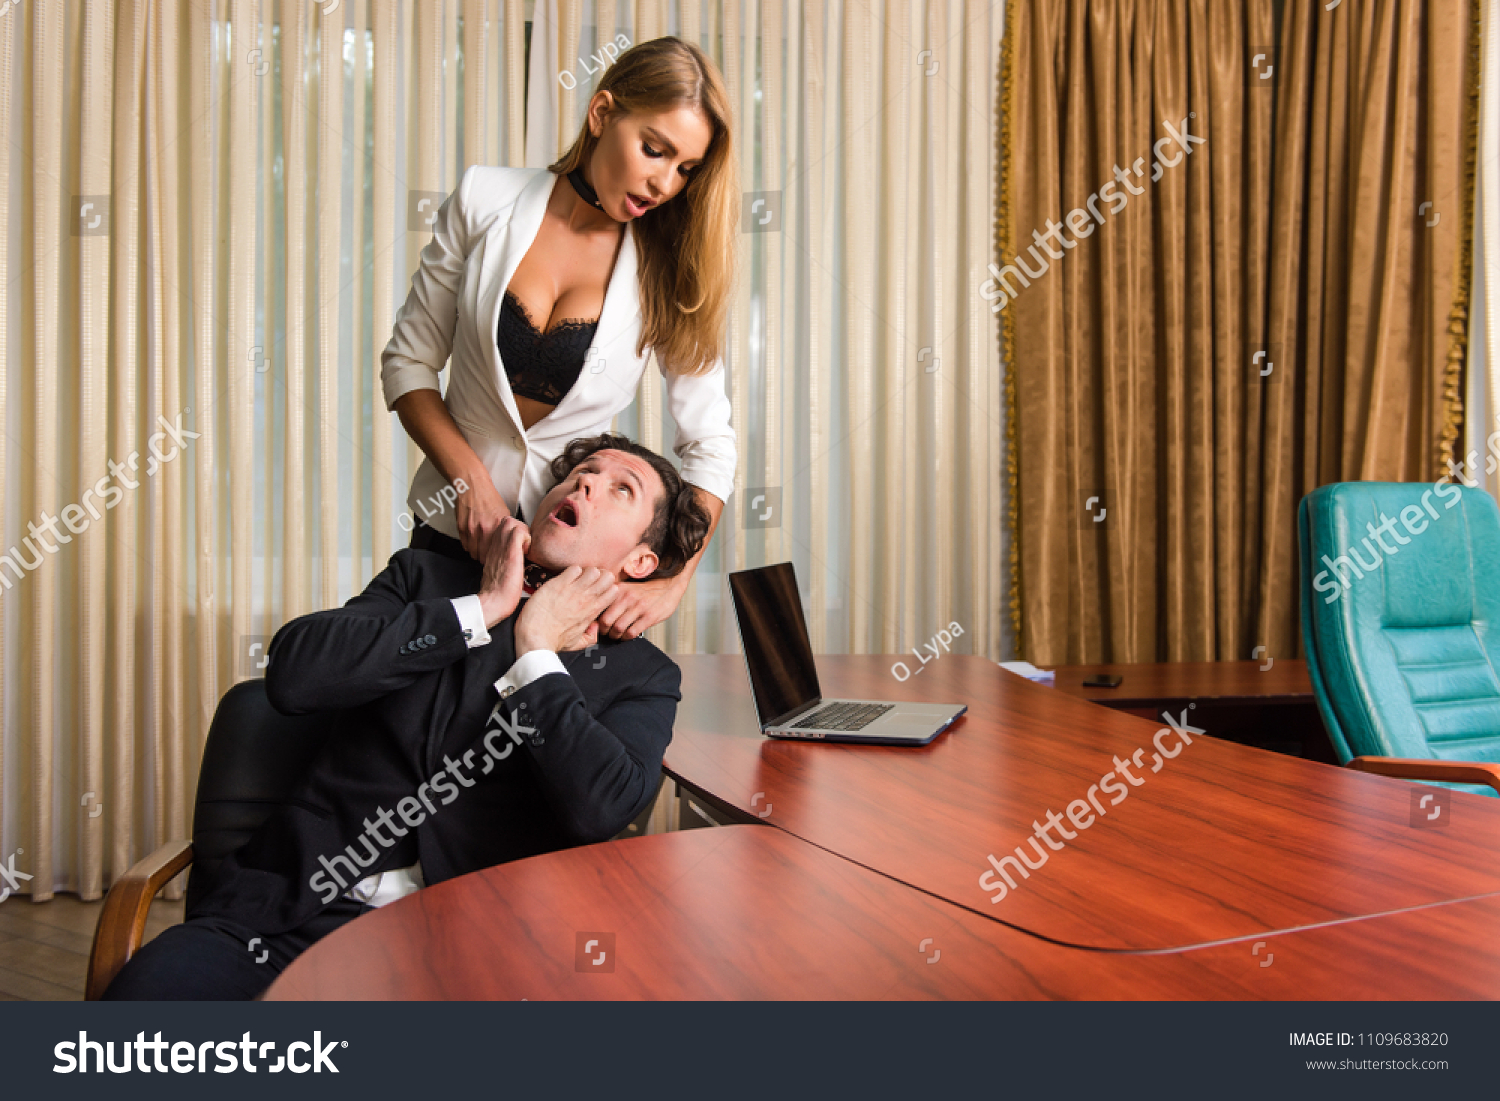 Salon Bdsm Bdsm Romance Office Stock Photo Edit Now 1109683820 Shutterstock